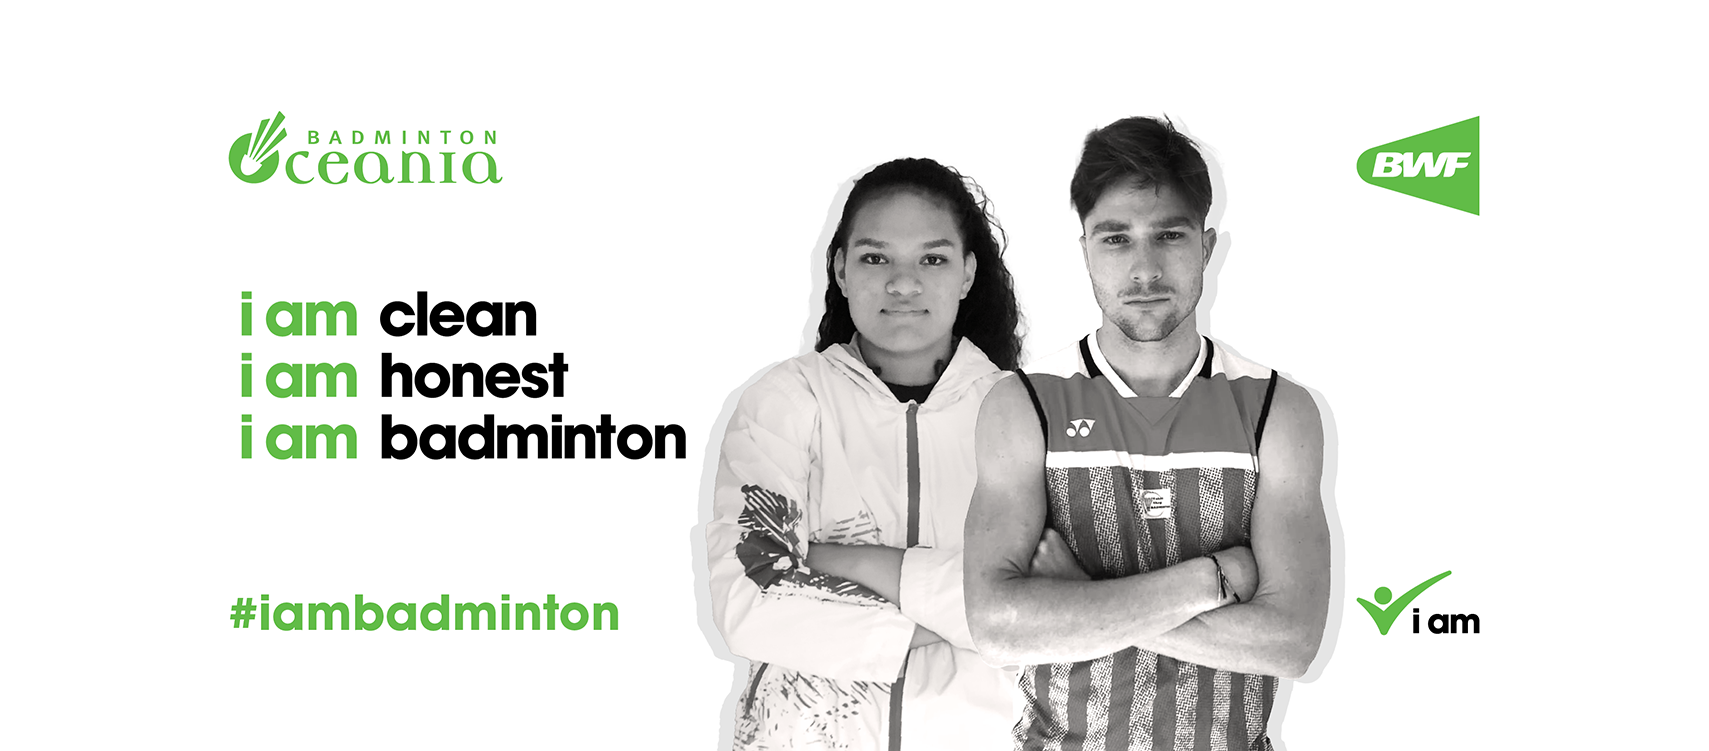 """Pacific Games champions Rossi and Matauli join """"i am badminton"""" campaign"""